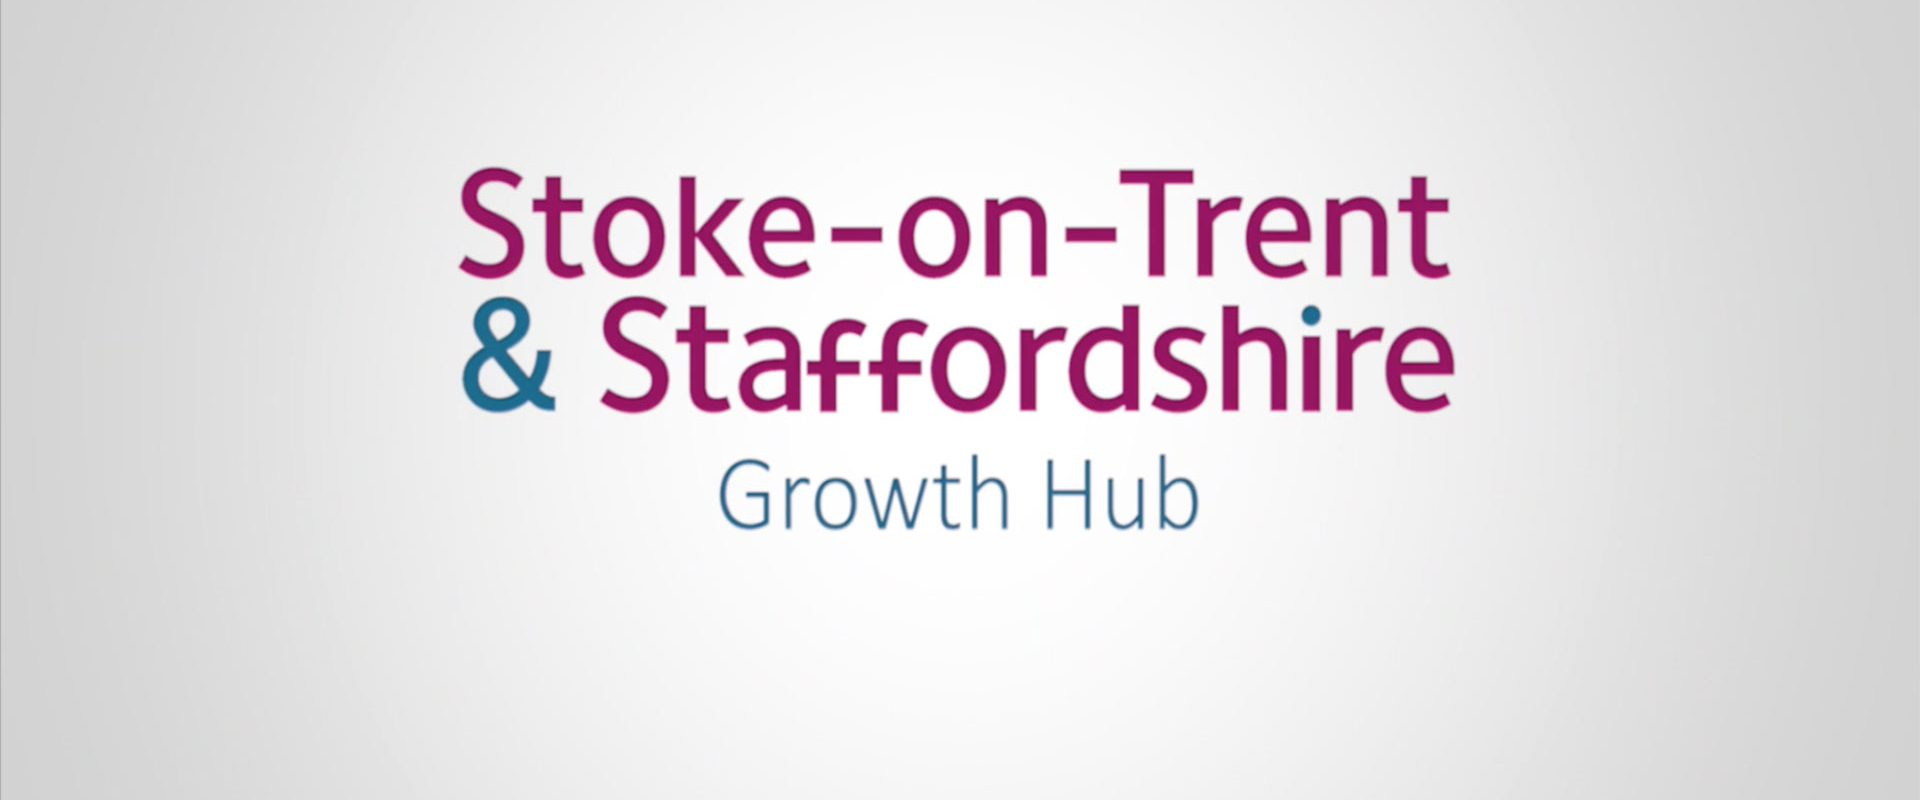 Growth Hub Free 1-2-1 Business Support Clinic: Stoke-On-Trent